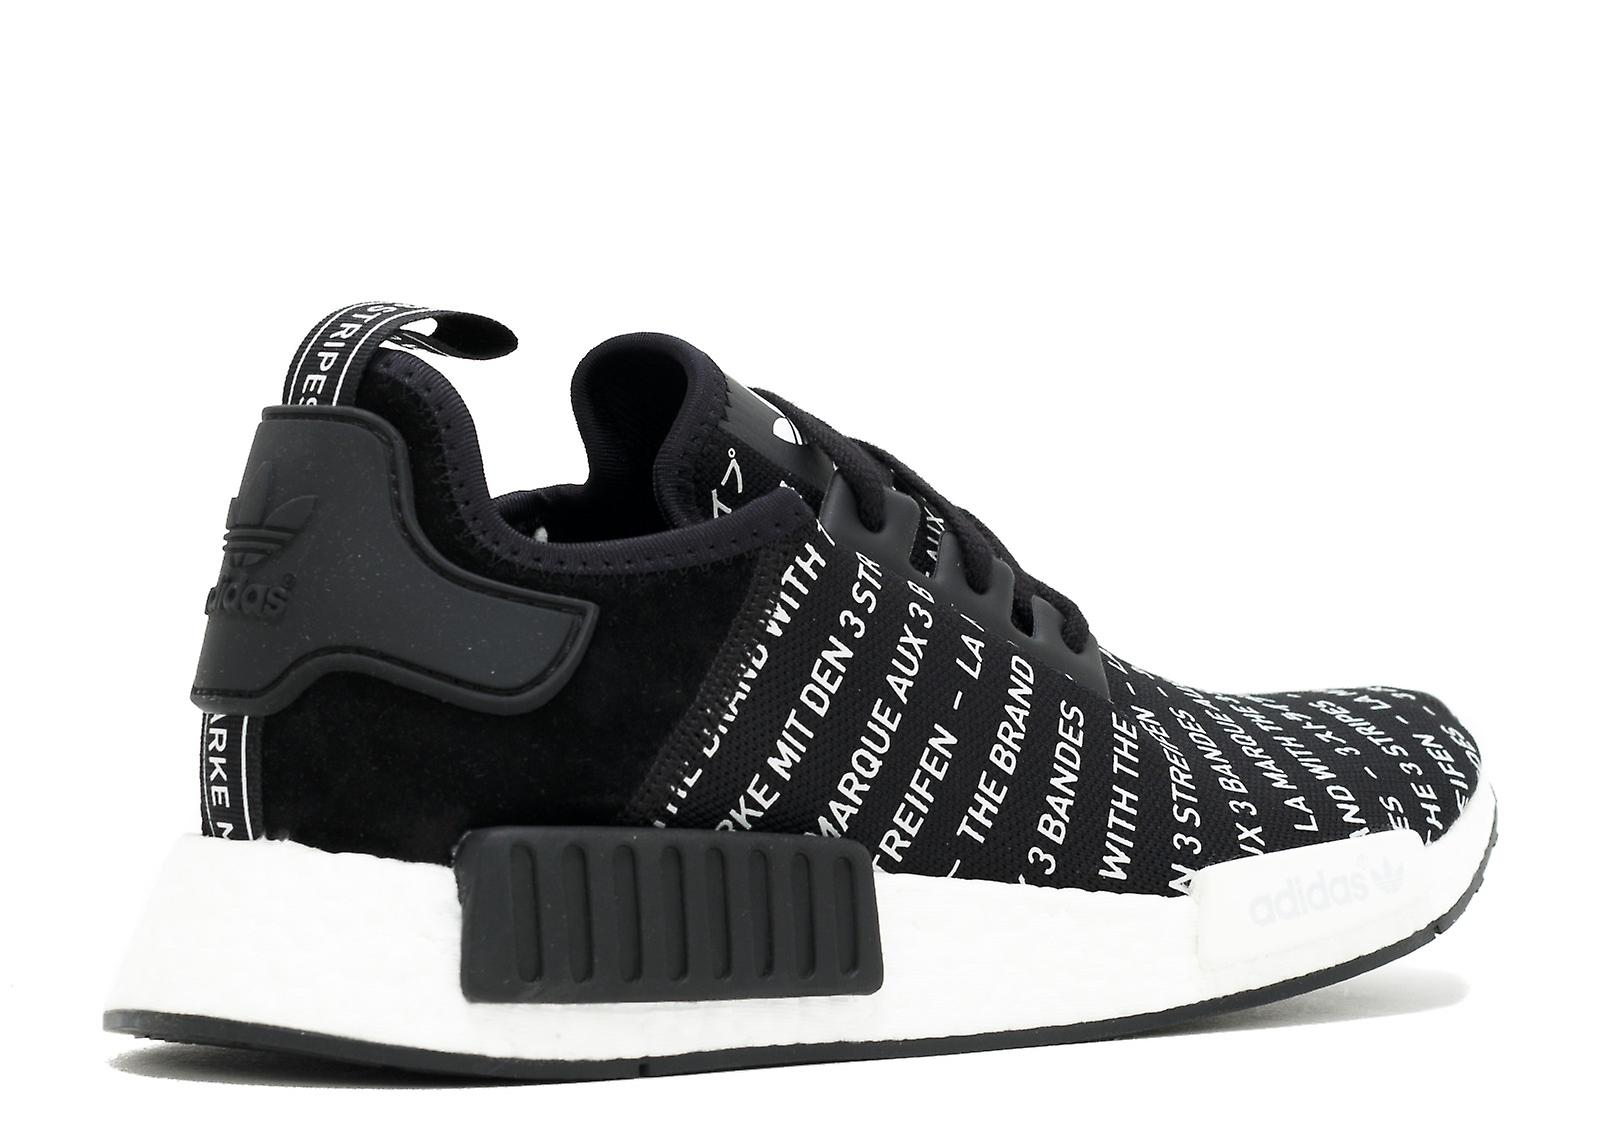 adidas NMD R1 The Brand With The 3 Stripes In Black S76519 h13GW